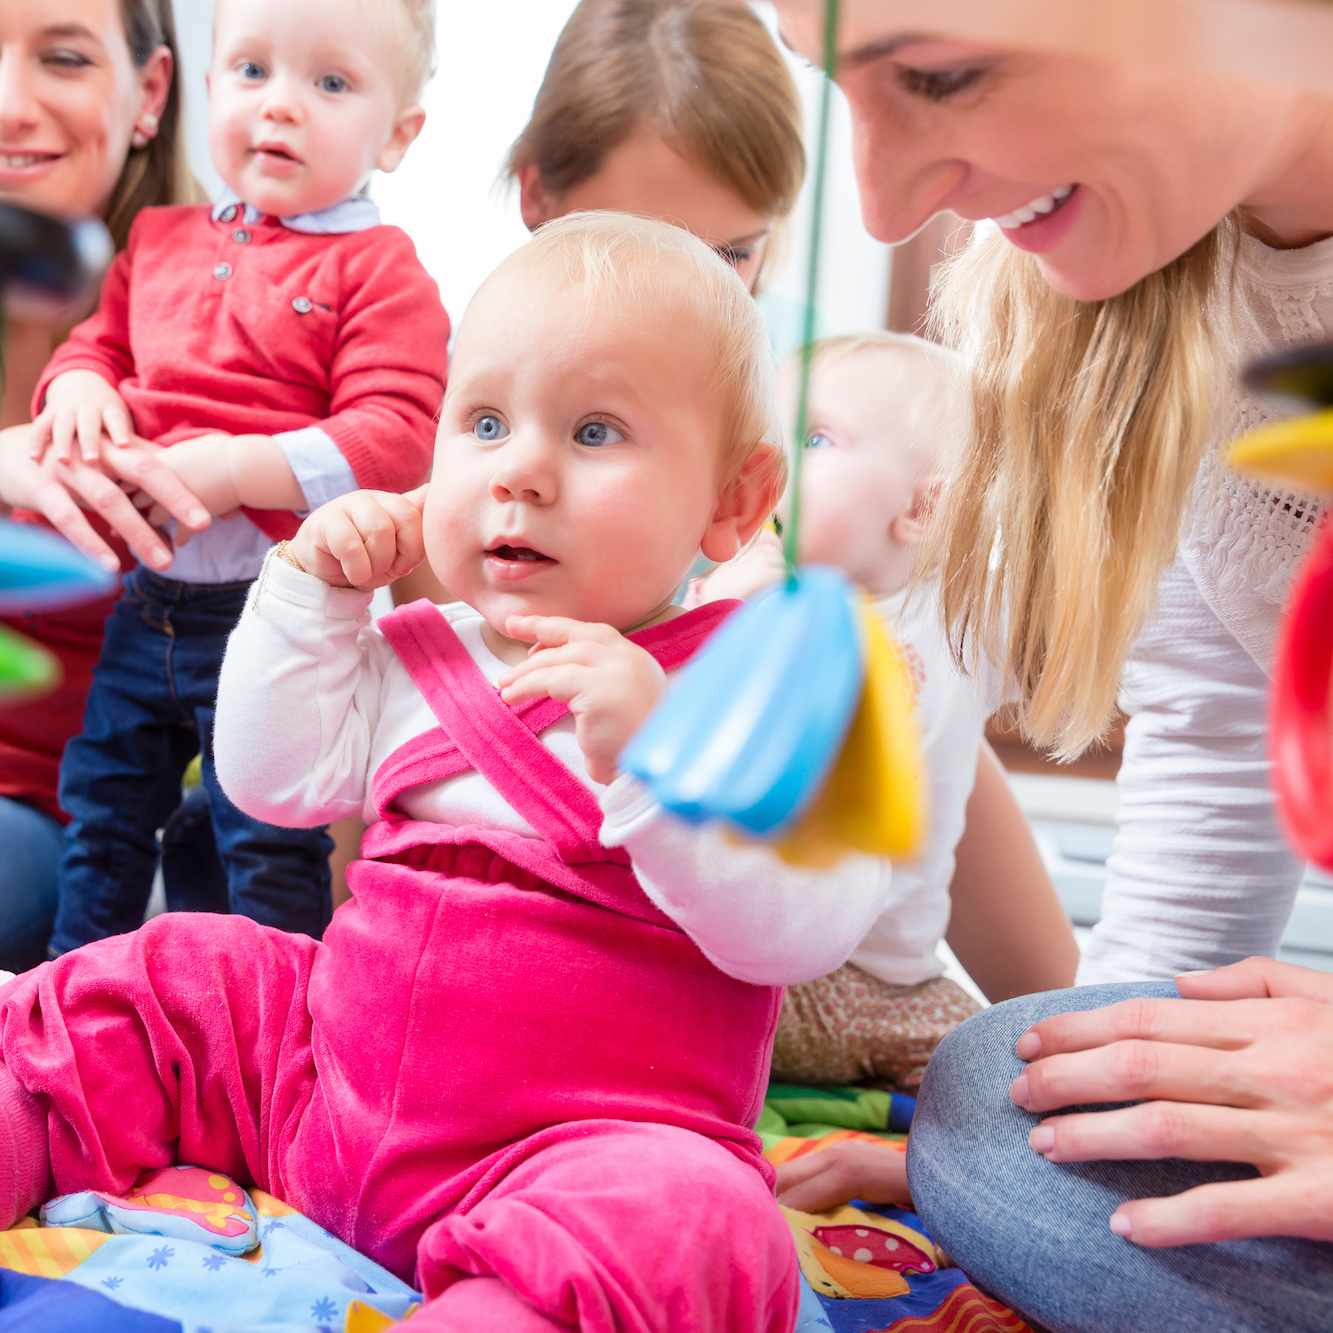 Baby Classes: 3–12 months old - Mondays - Music, movement and play (two times to choose from)Wednesdays - Story time with music and play (two times to choose from)